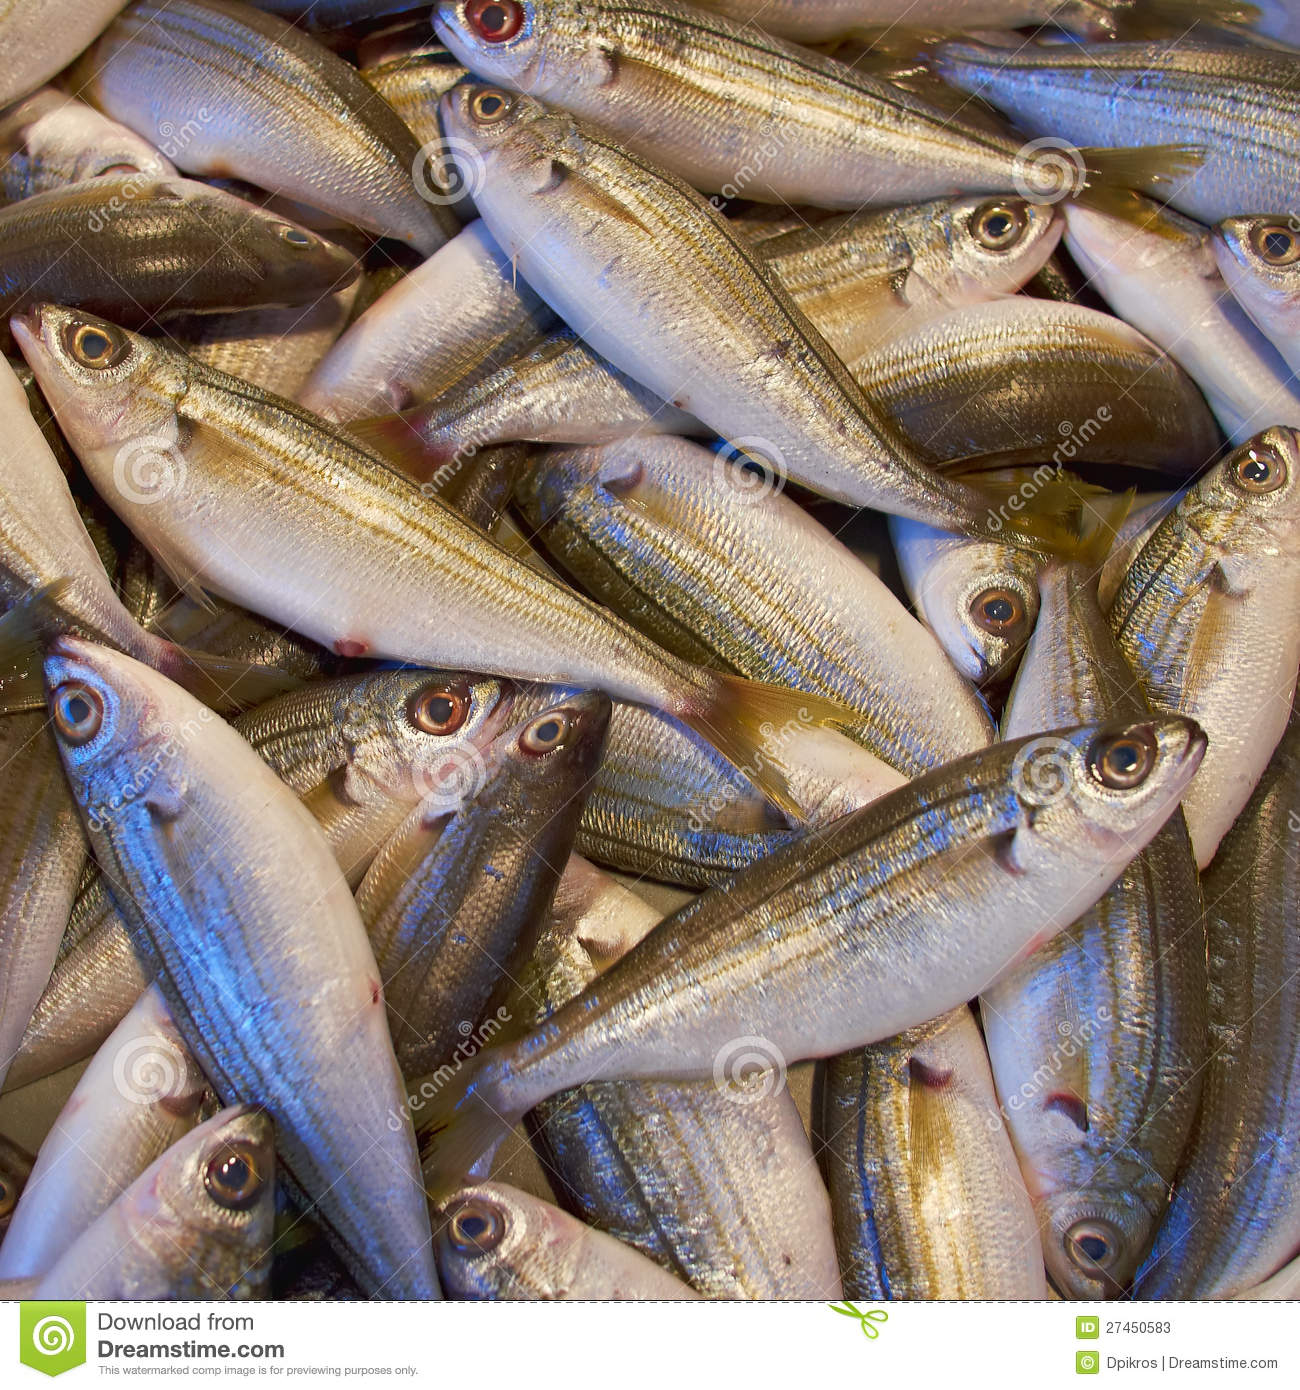 Bogue fish catch for sale stock photos image 27450583 for Stock fish for sale